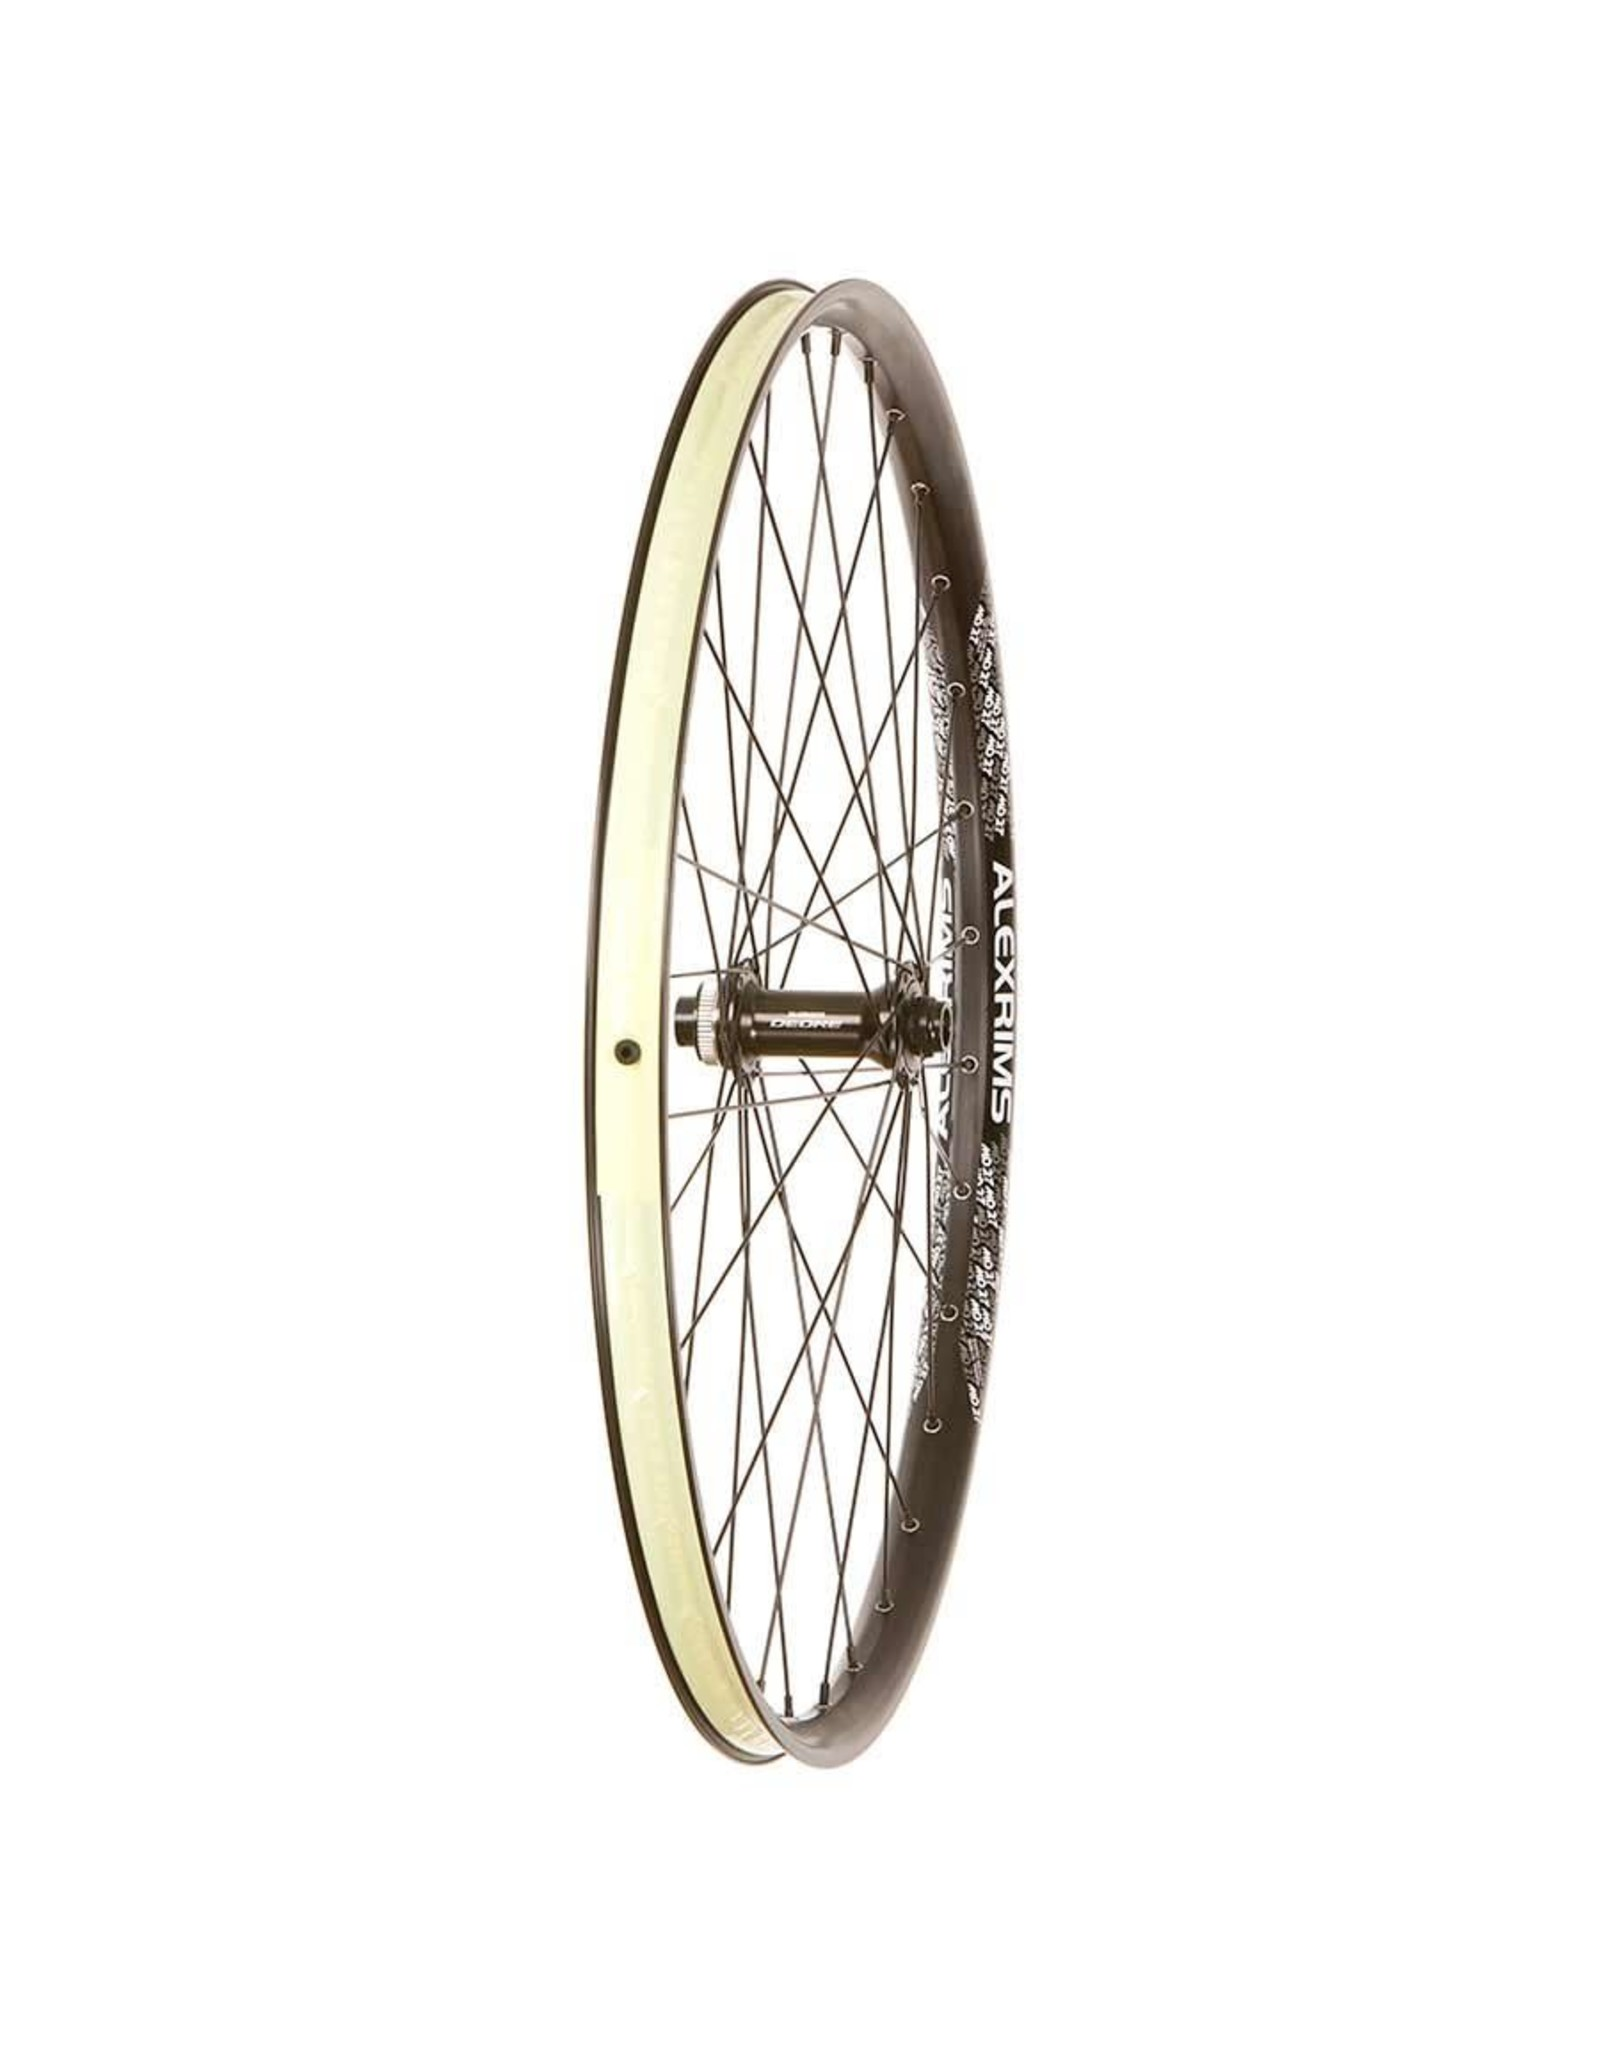 Wheel Shop Alex MD27/ Shimano M6010 27.5'', Wheel, Front, 15mm TA, 110mm Boost, Center Lock